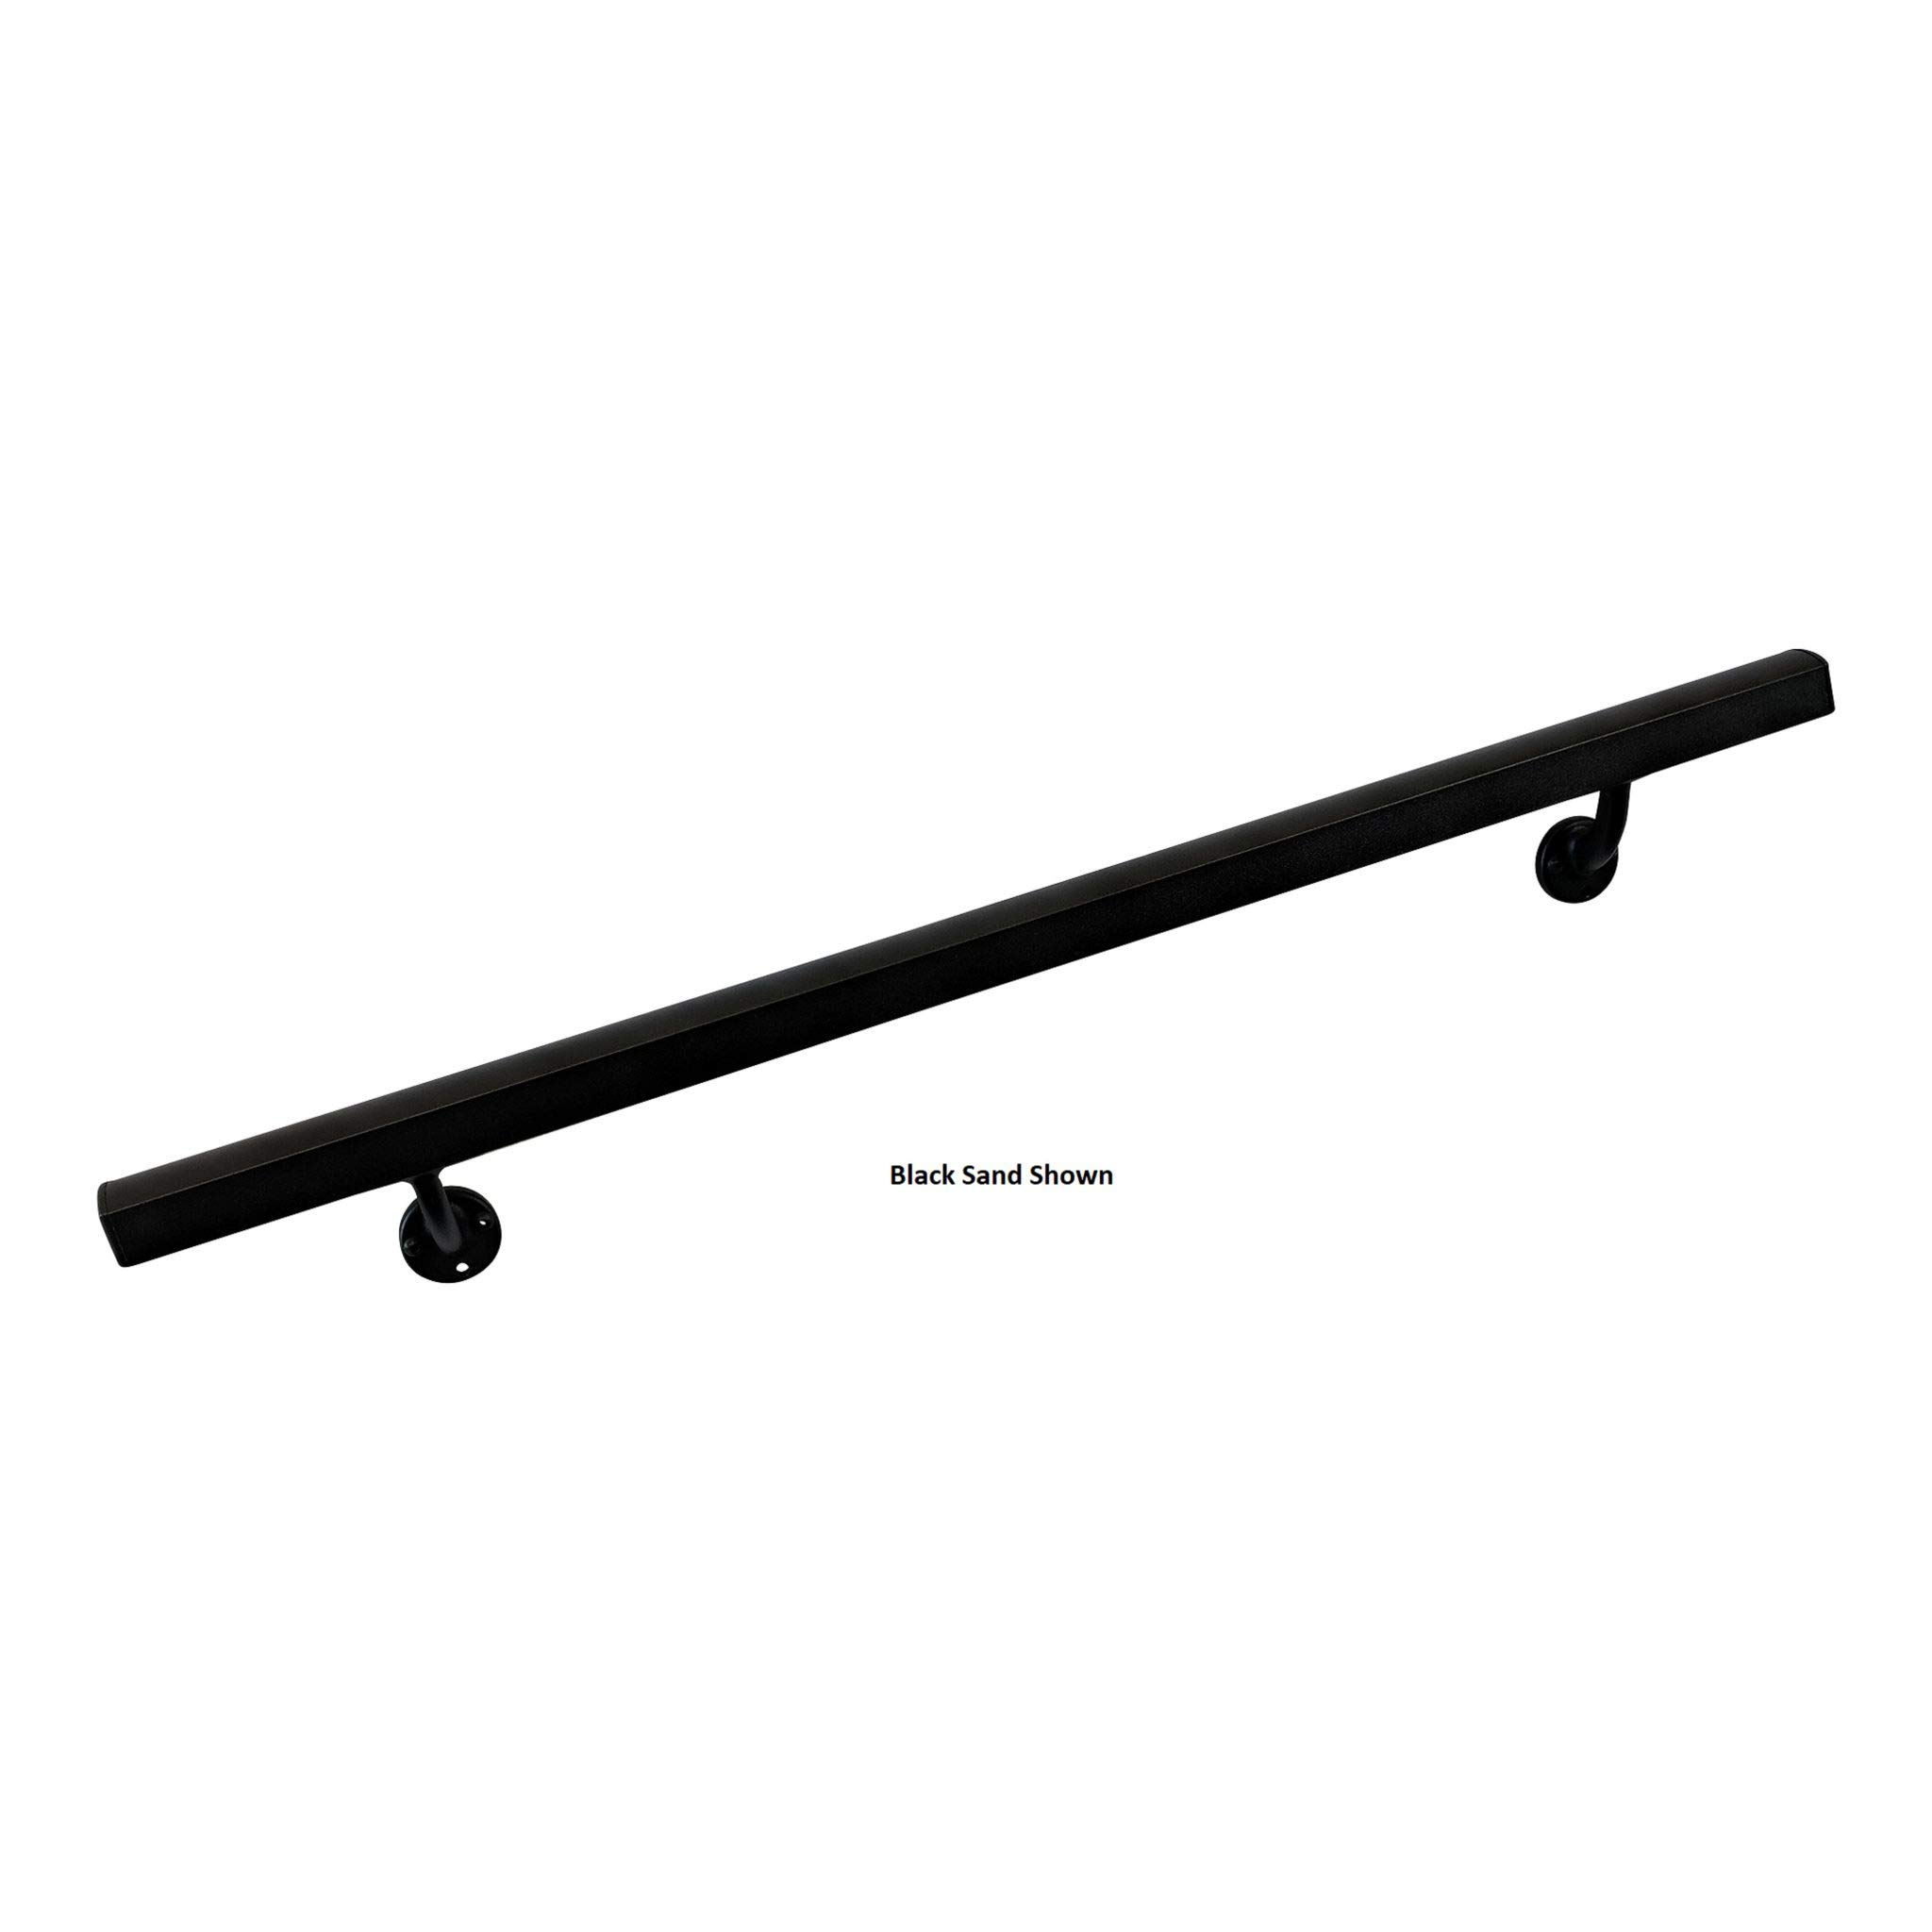 Aluminum Handrail Direct AHR 3' Handrail Section with mounts - White Sand Texture